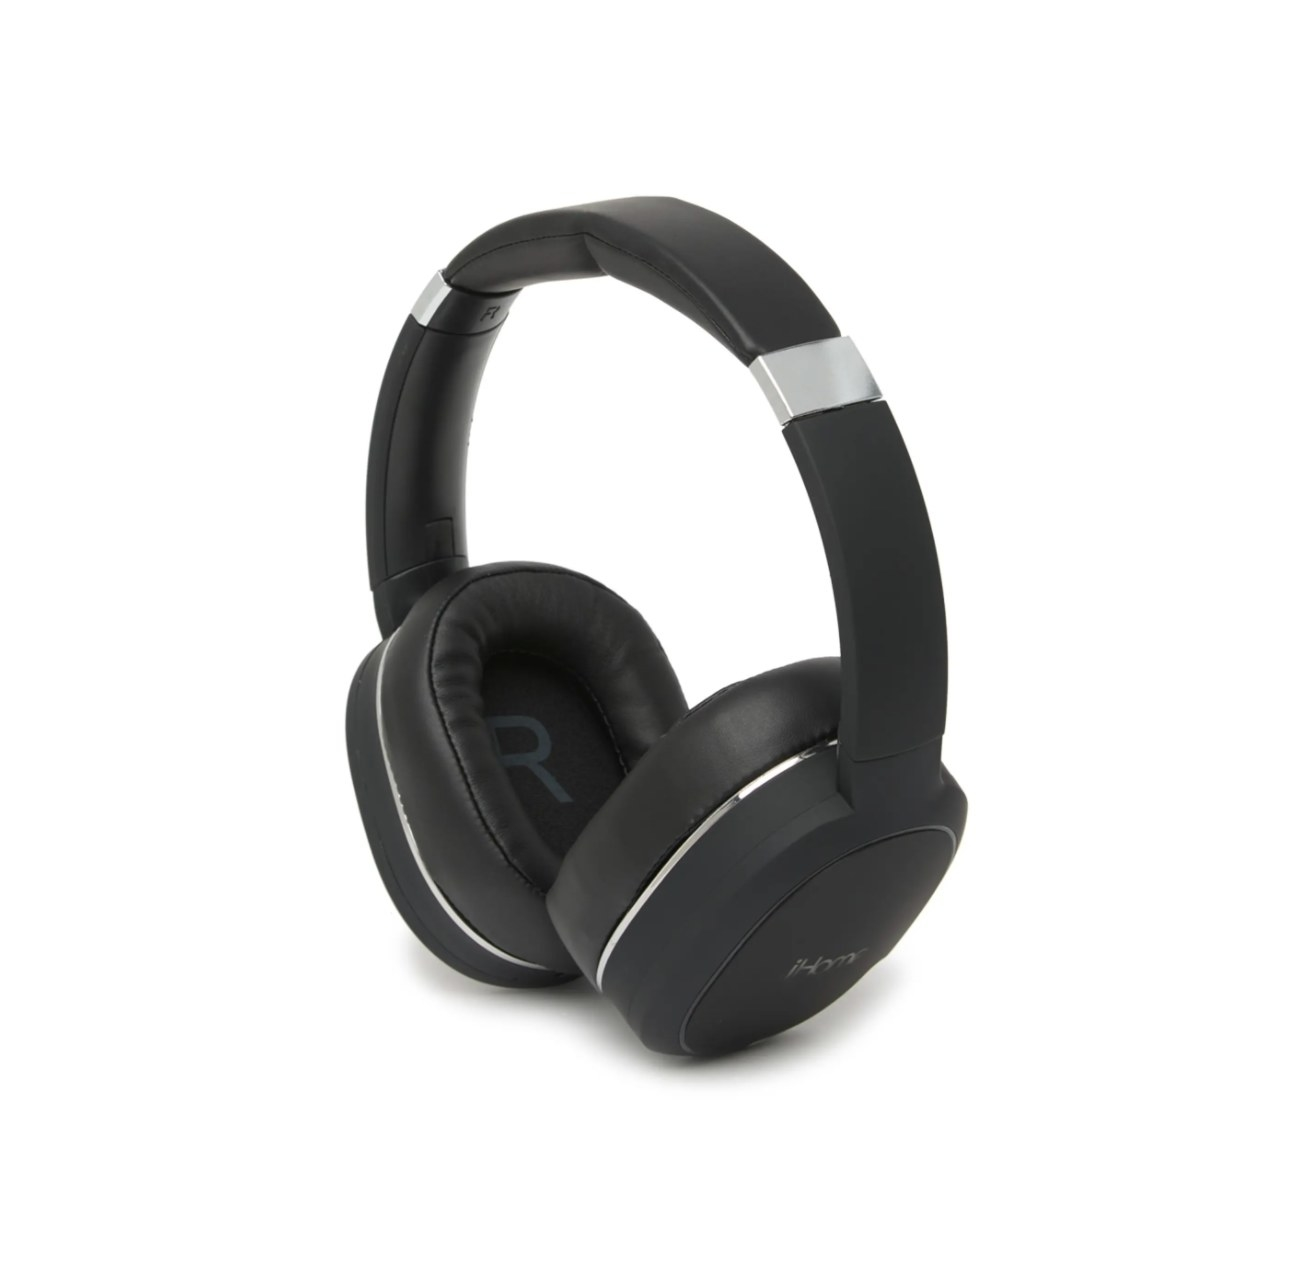 The bluetooth over the ear headphones in black